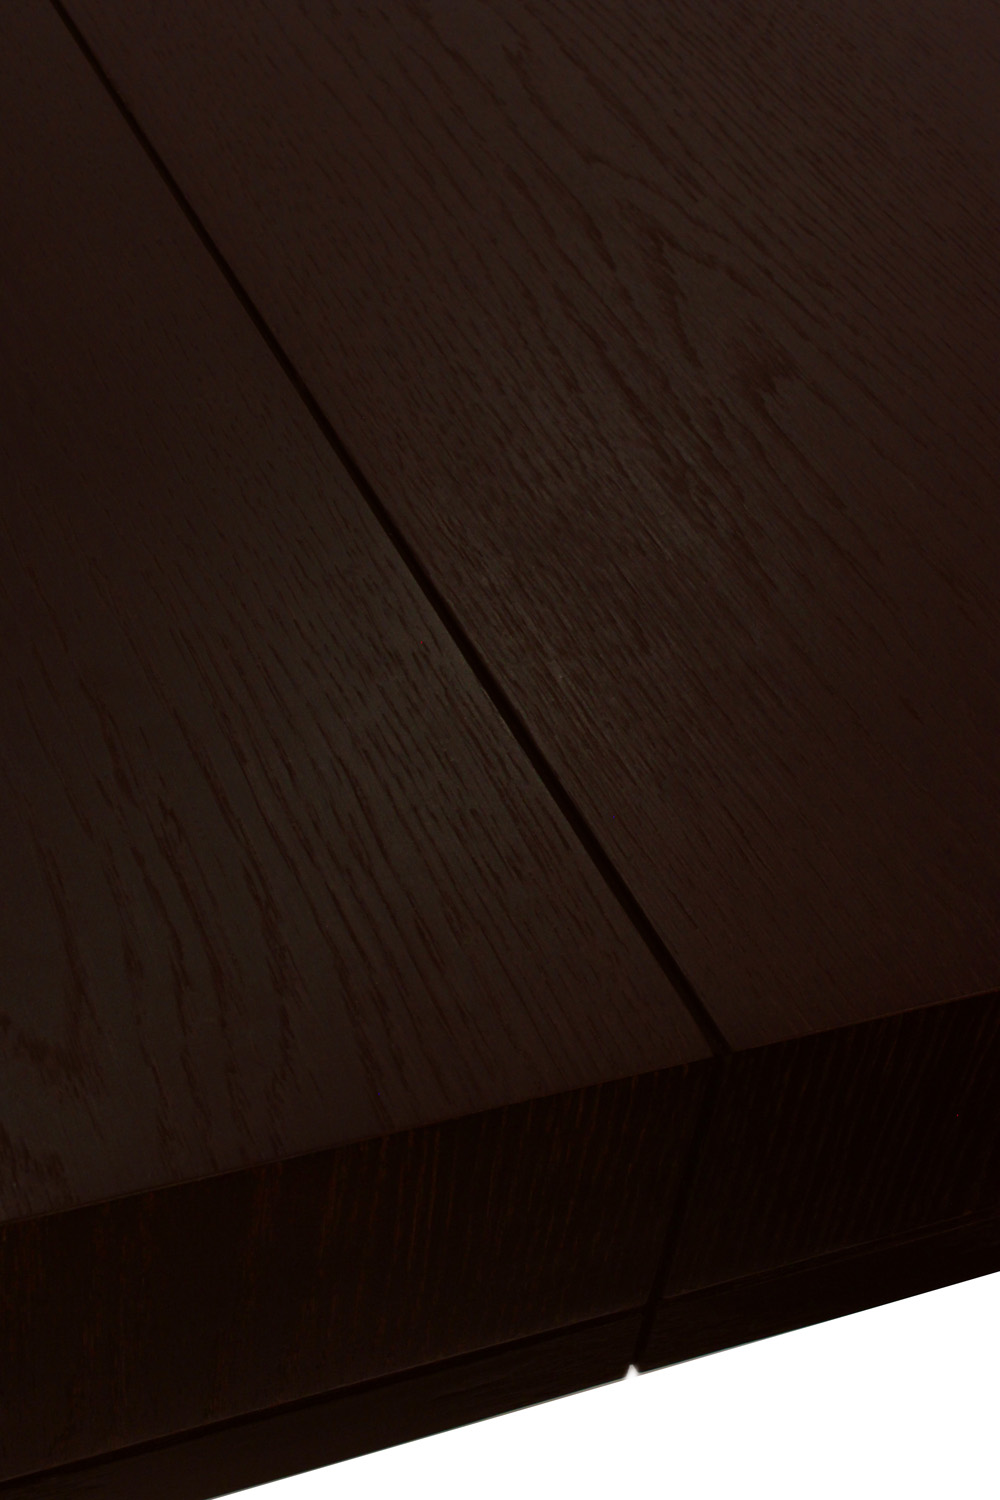 Liagre 85 dark oak diningtable137 detail4 hires.jpg